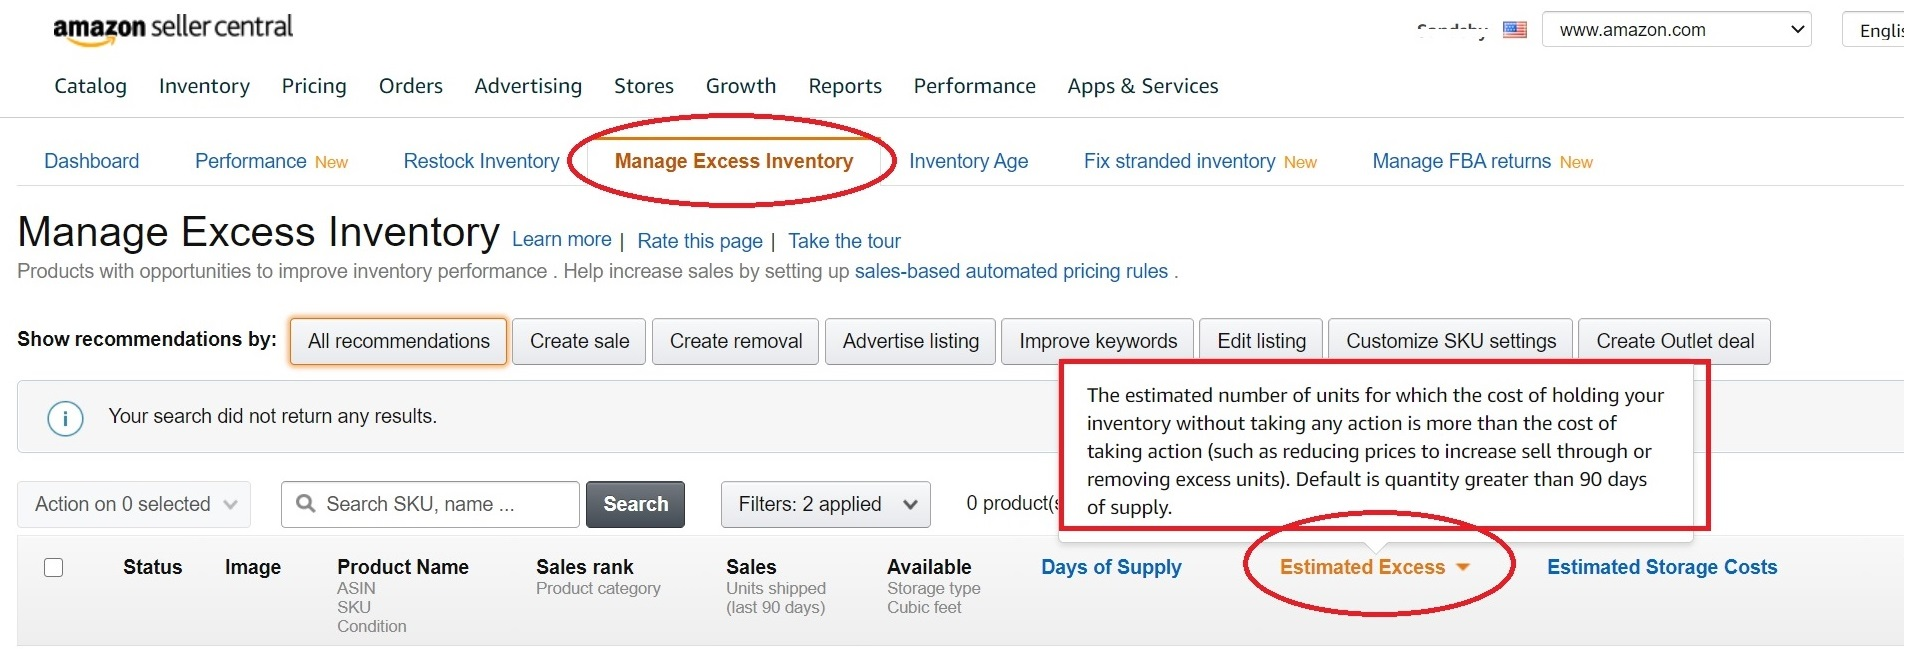 Amazon's tool Manage Excess Inventory